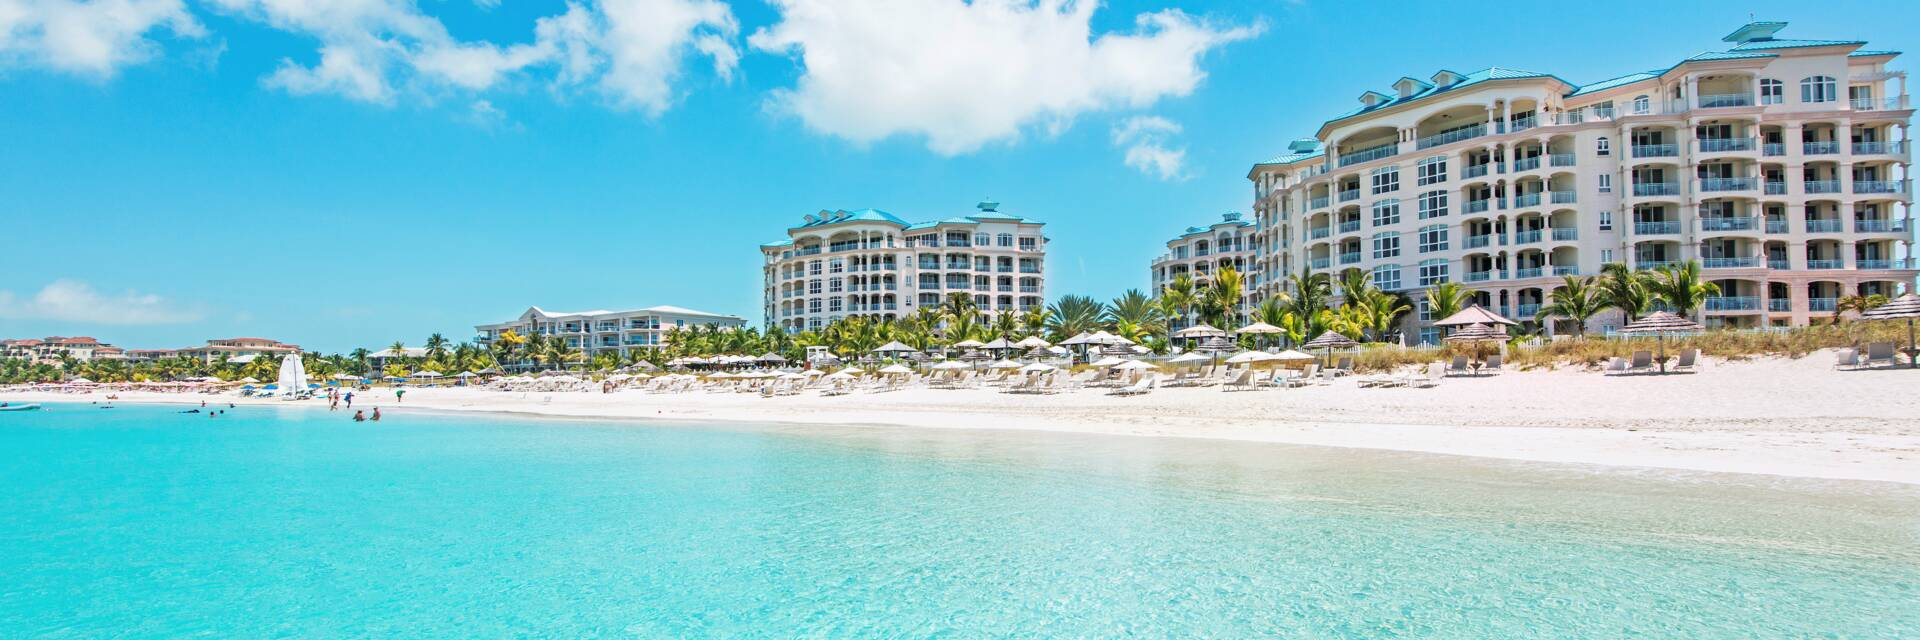 Providenciales Hotels And Resorts